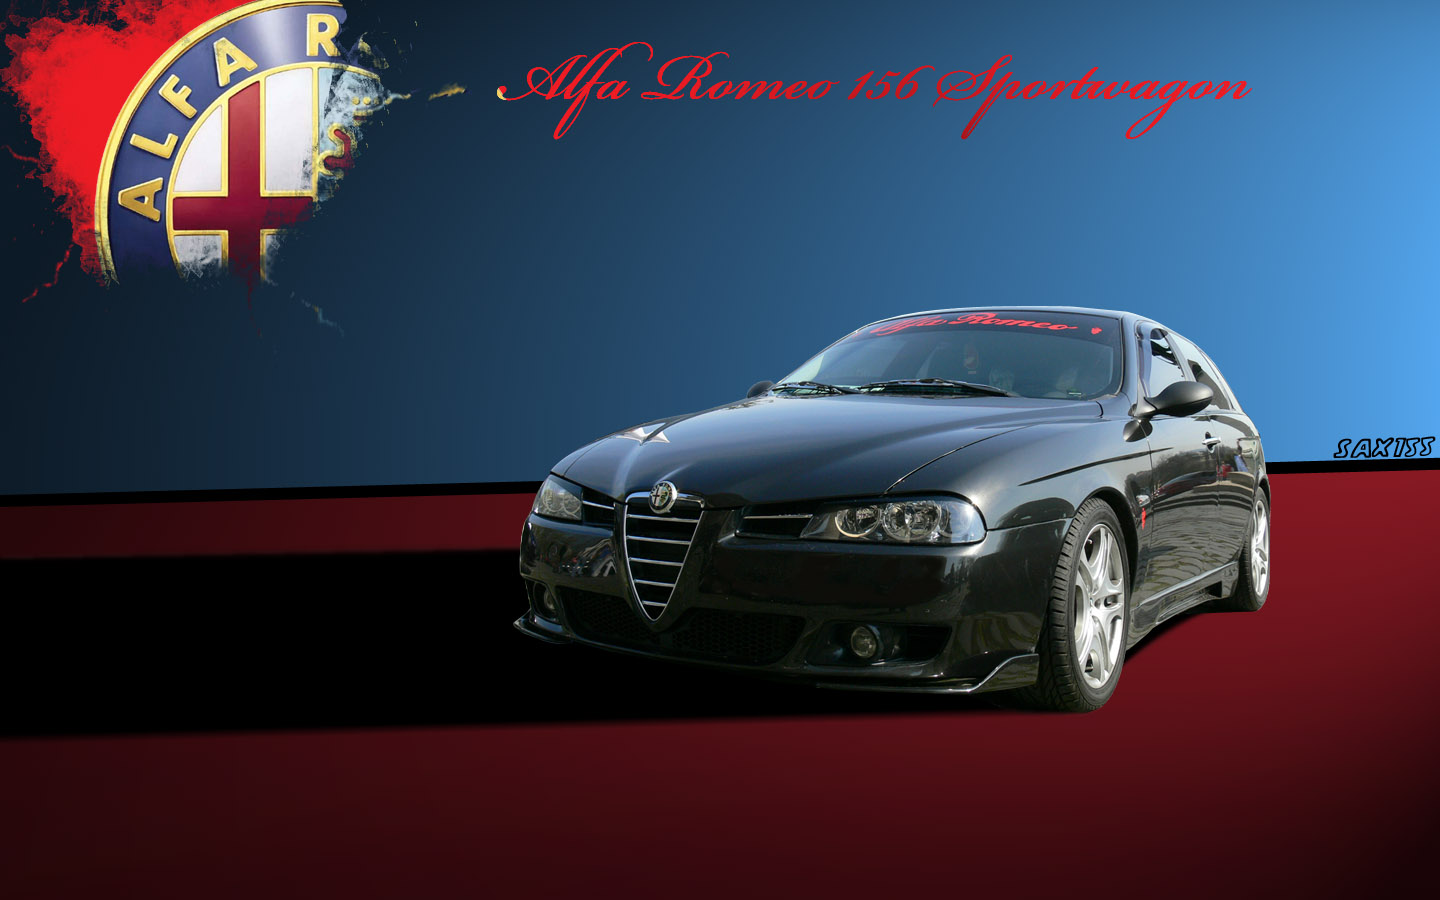 alfa romeo 156 sw by sax155 on deviantart. Black Bedroom Furniture Sets. Home Design Ideas